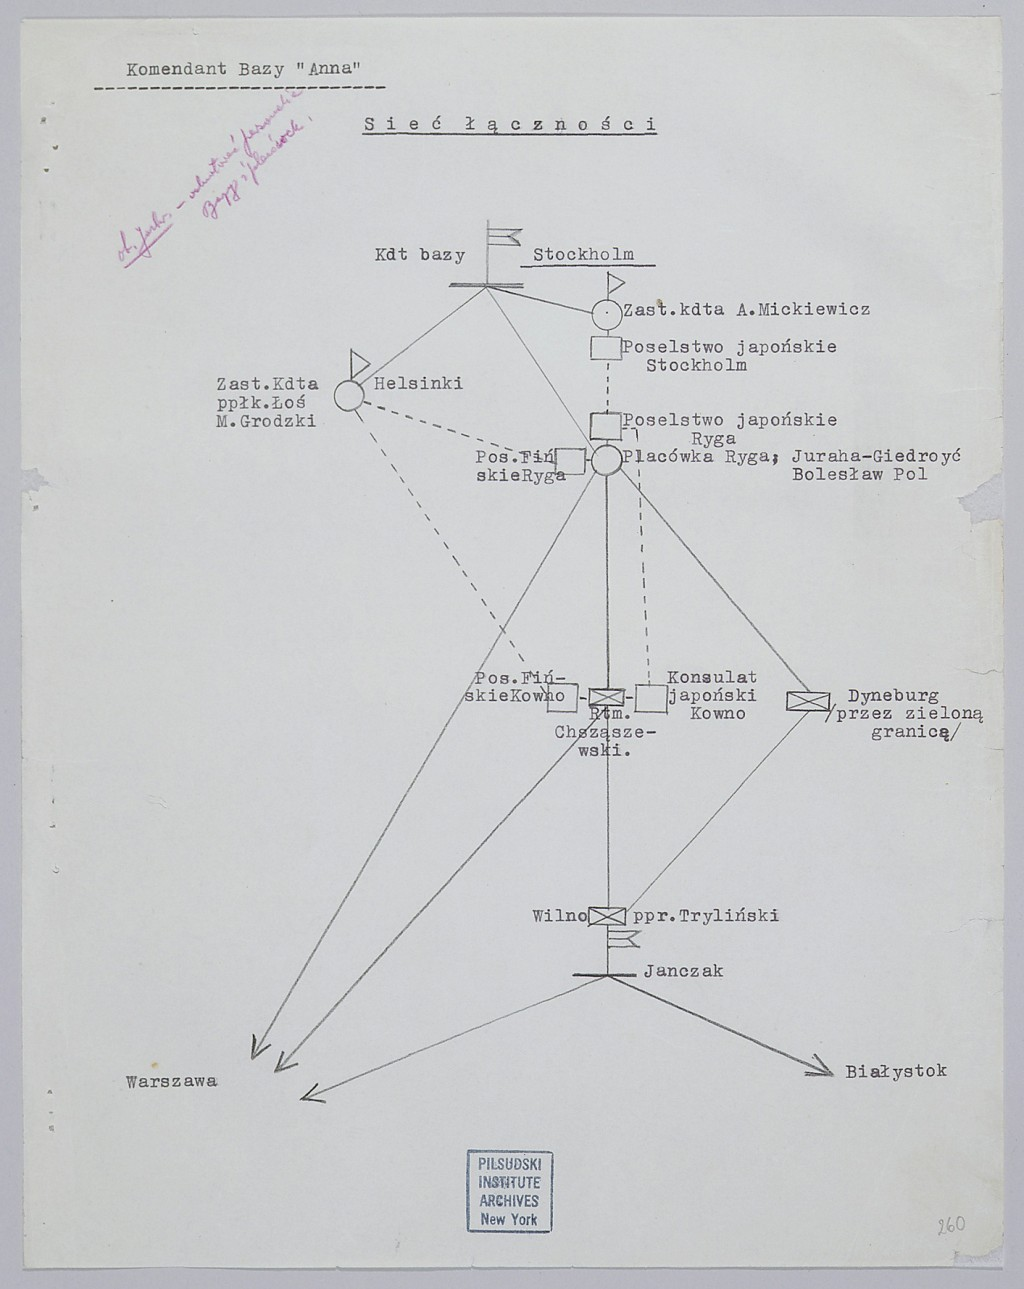 """<p>Diagram showing """"the web of communications"""" between Japanese diplomats and members of the Polish resistance in the Baltic states and Scandinavia. The """"Konsulat japonski Kowno"""" refers to Sugihara. Despite its ties with Nazi Germany, Japan pursued its own course in foreign policy. After the Germans occupied Poland and the Netherlands, Japan continued relations with both the Polish and Dutch governments-in-exile in London. July 1940.</p>"""